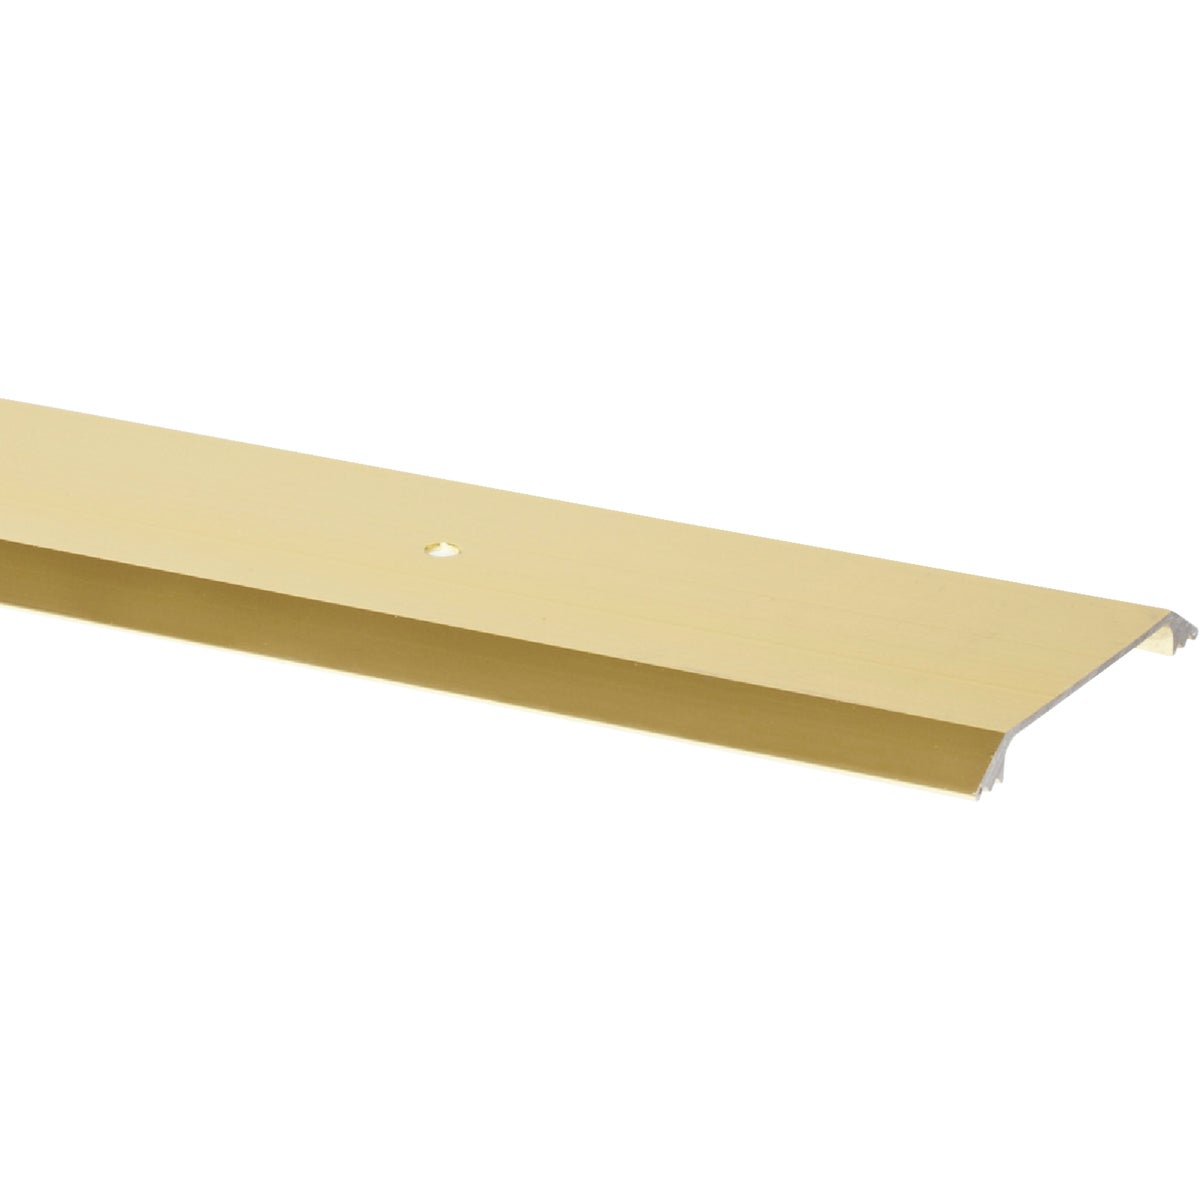 "36""GOLD AFF212 THRESHOLD - 09613 by M D Building Prod"